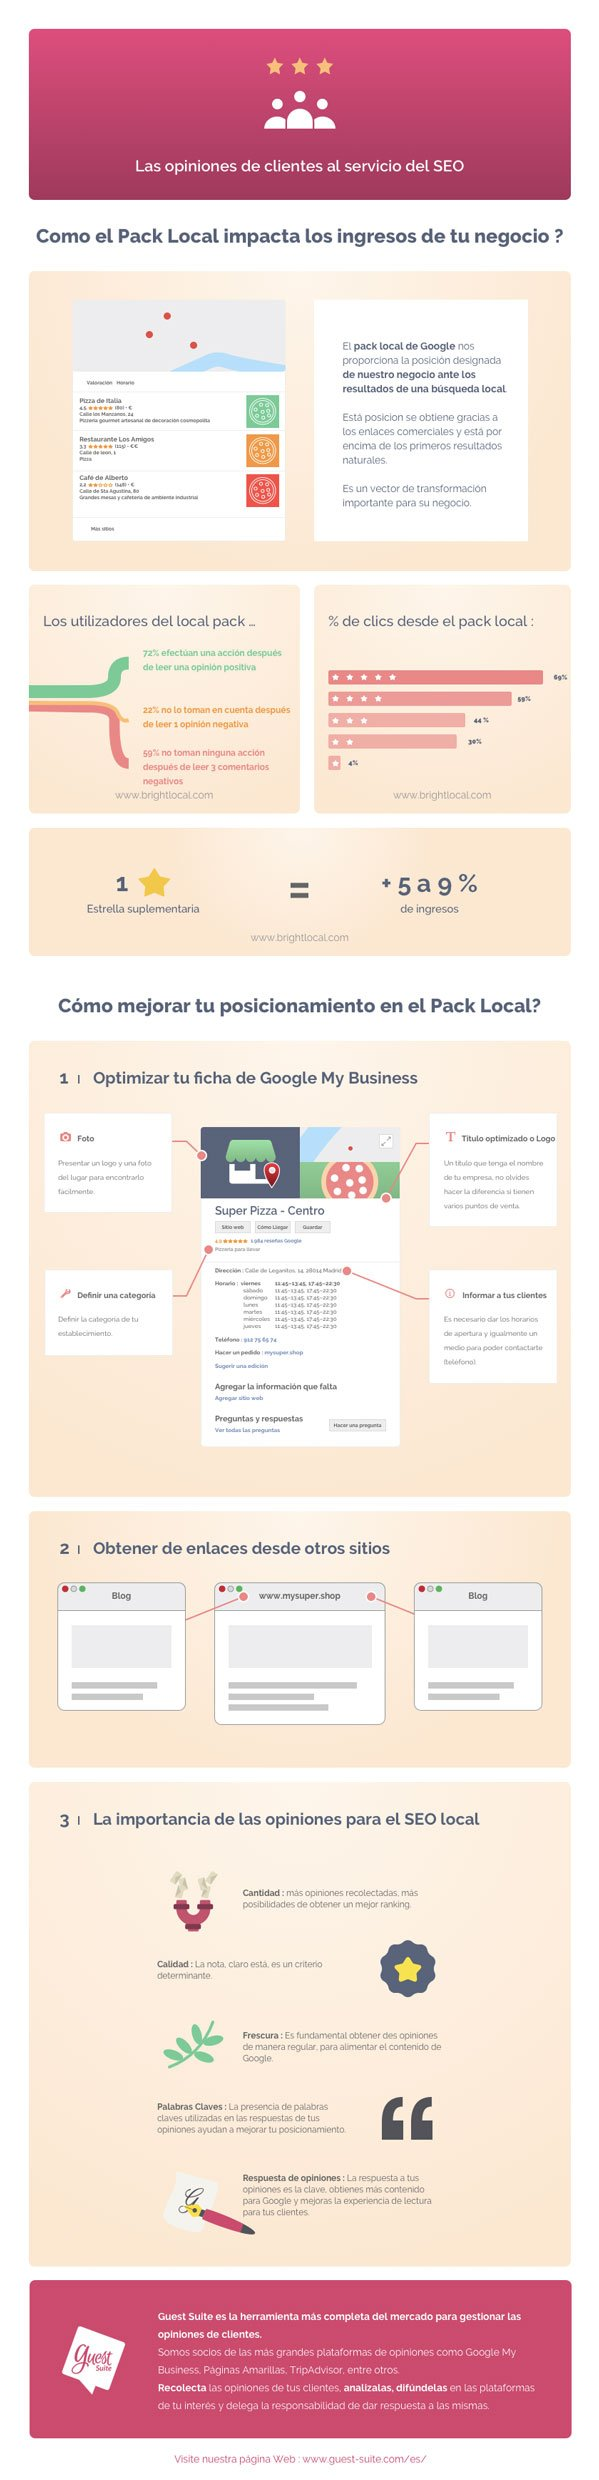 infografia resenas google my business